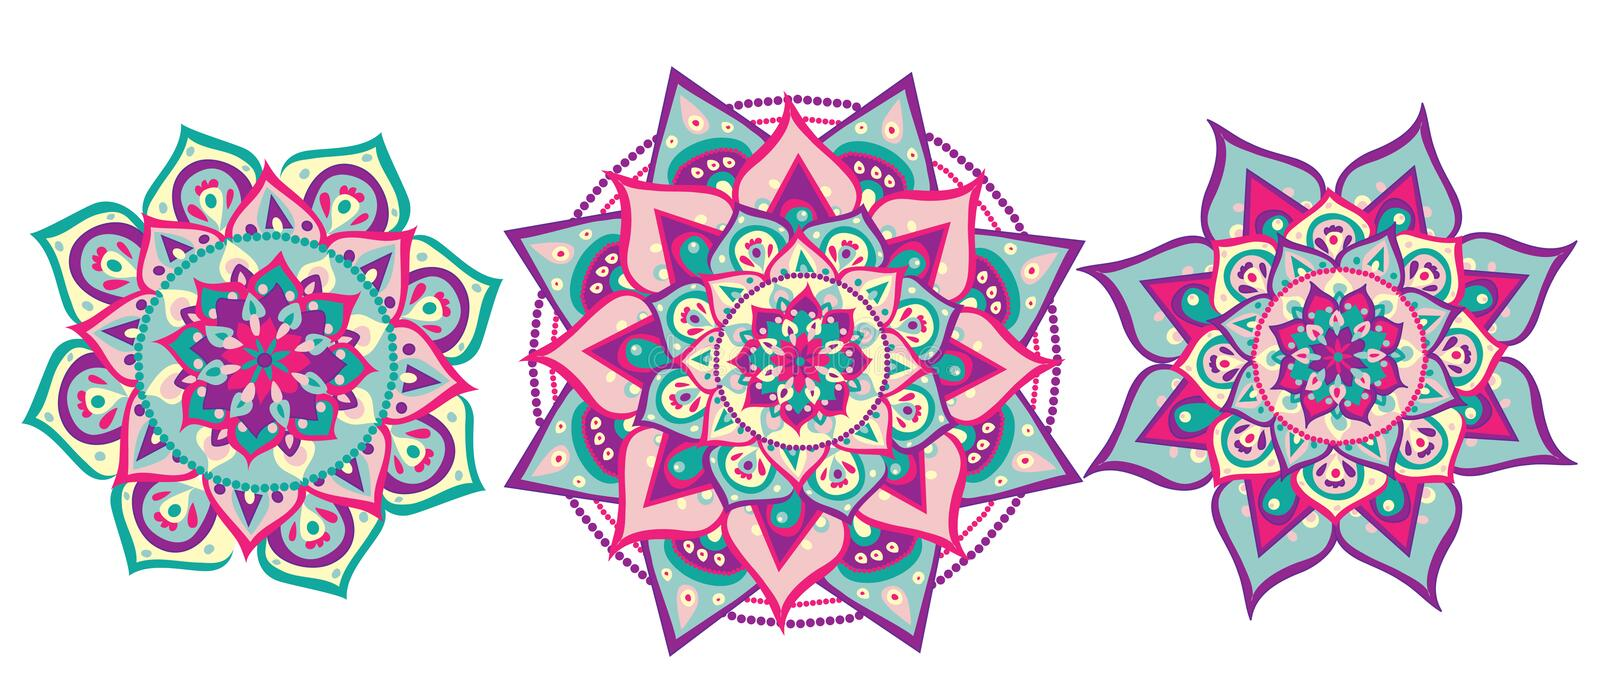 Ensemble de mandala illustration stock